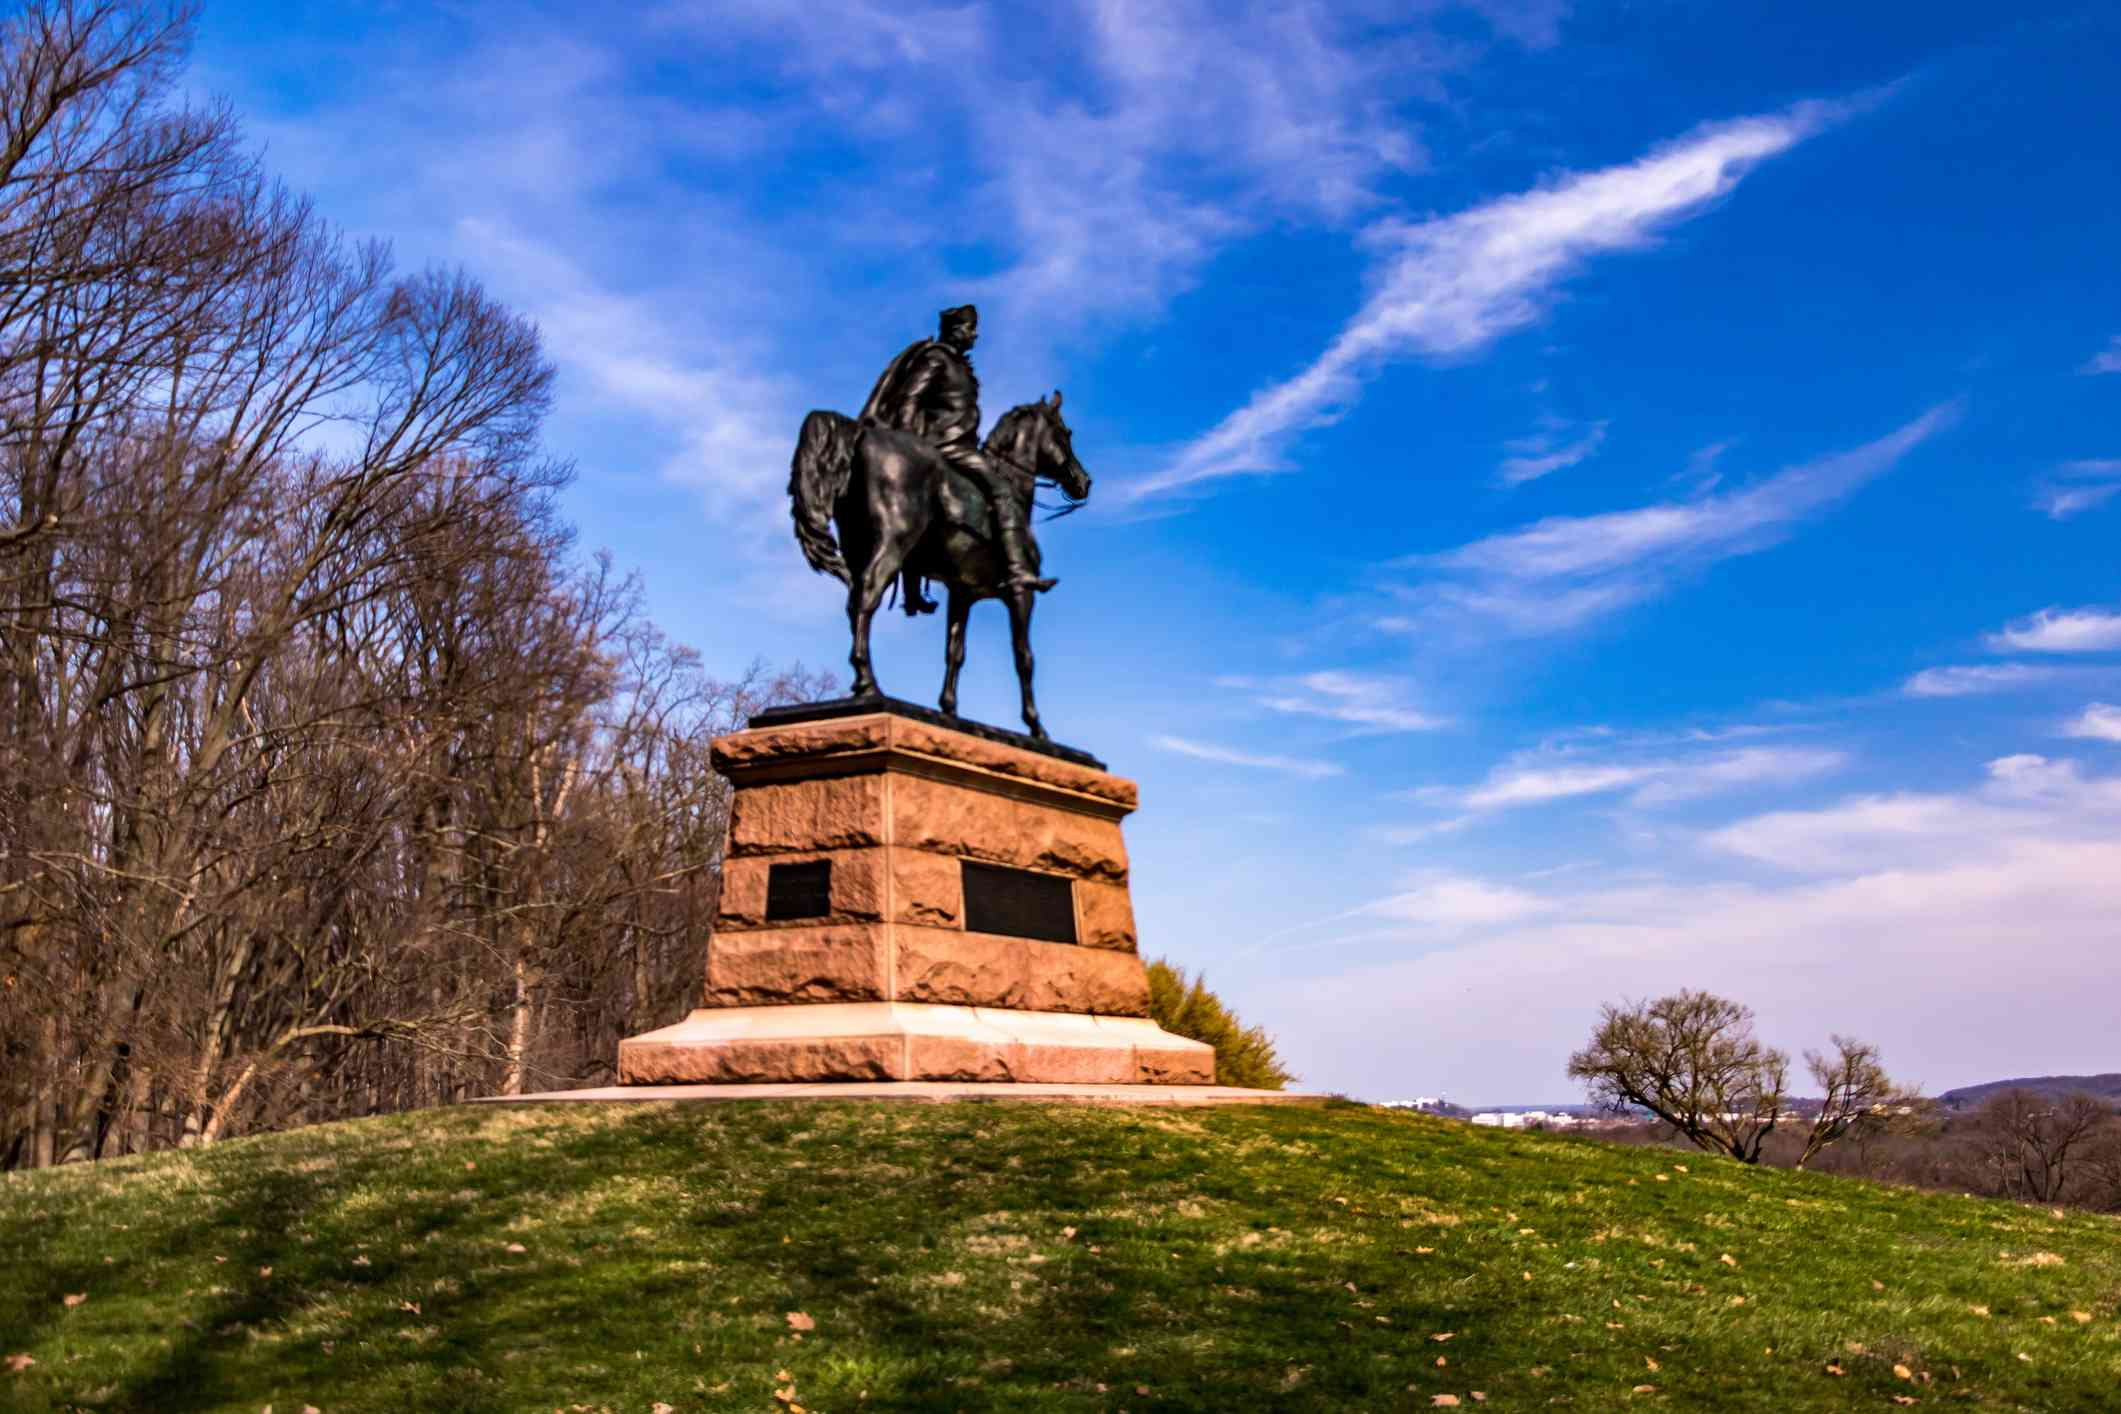 Monument in Valley Forge National Park